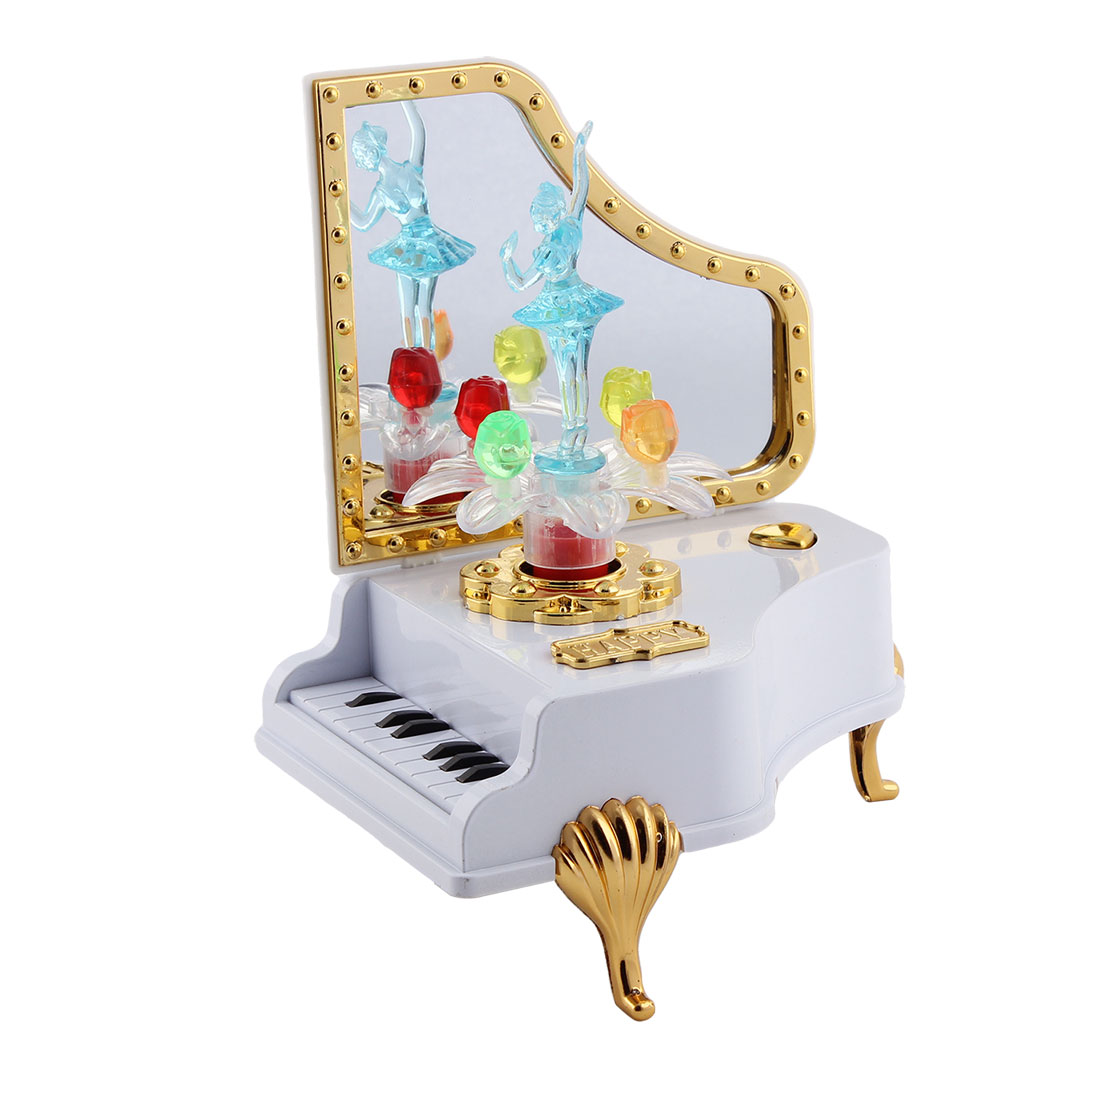 Desktop Ornament Plastic Piano Shaped Ballet Girl Dancing Music Maker Box Case Blue